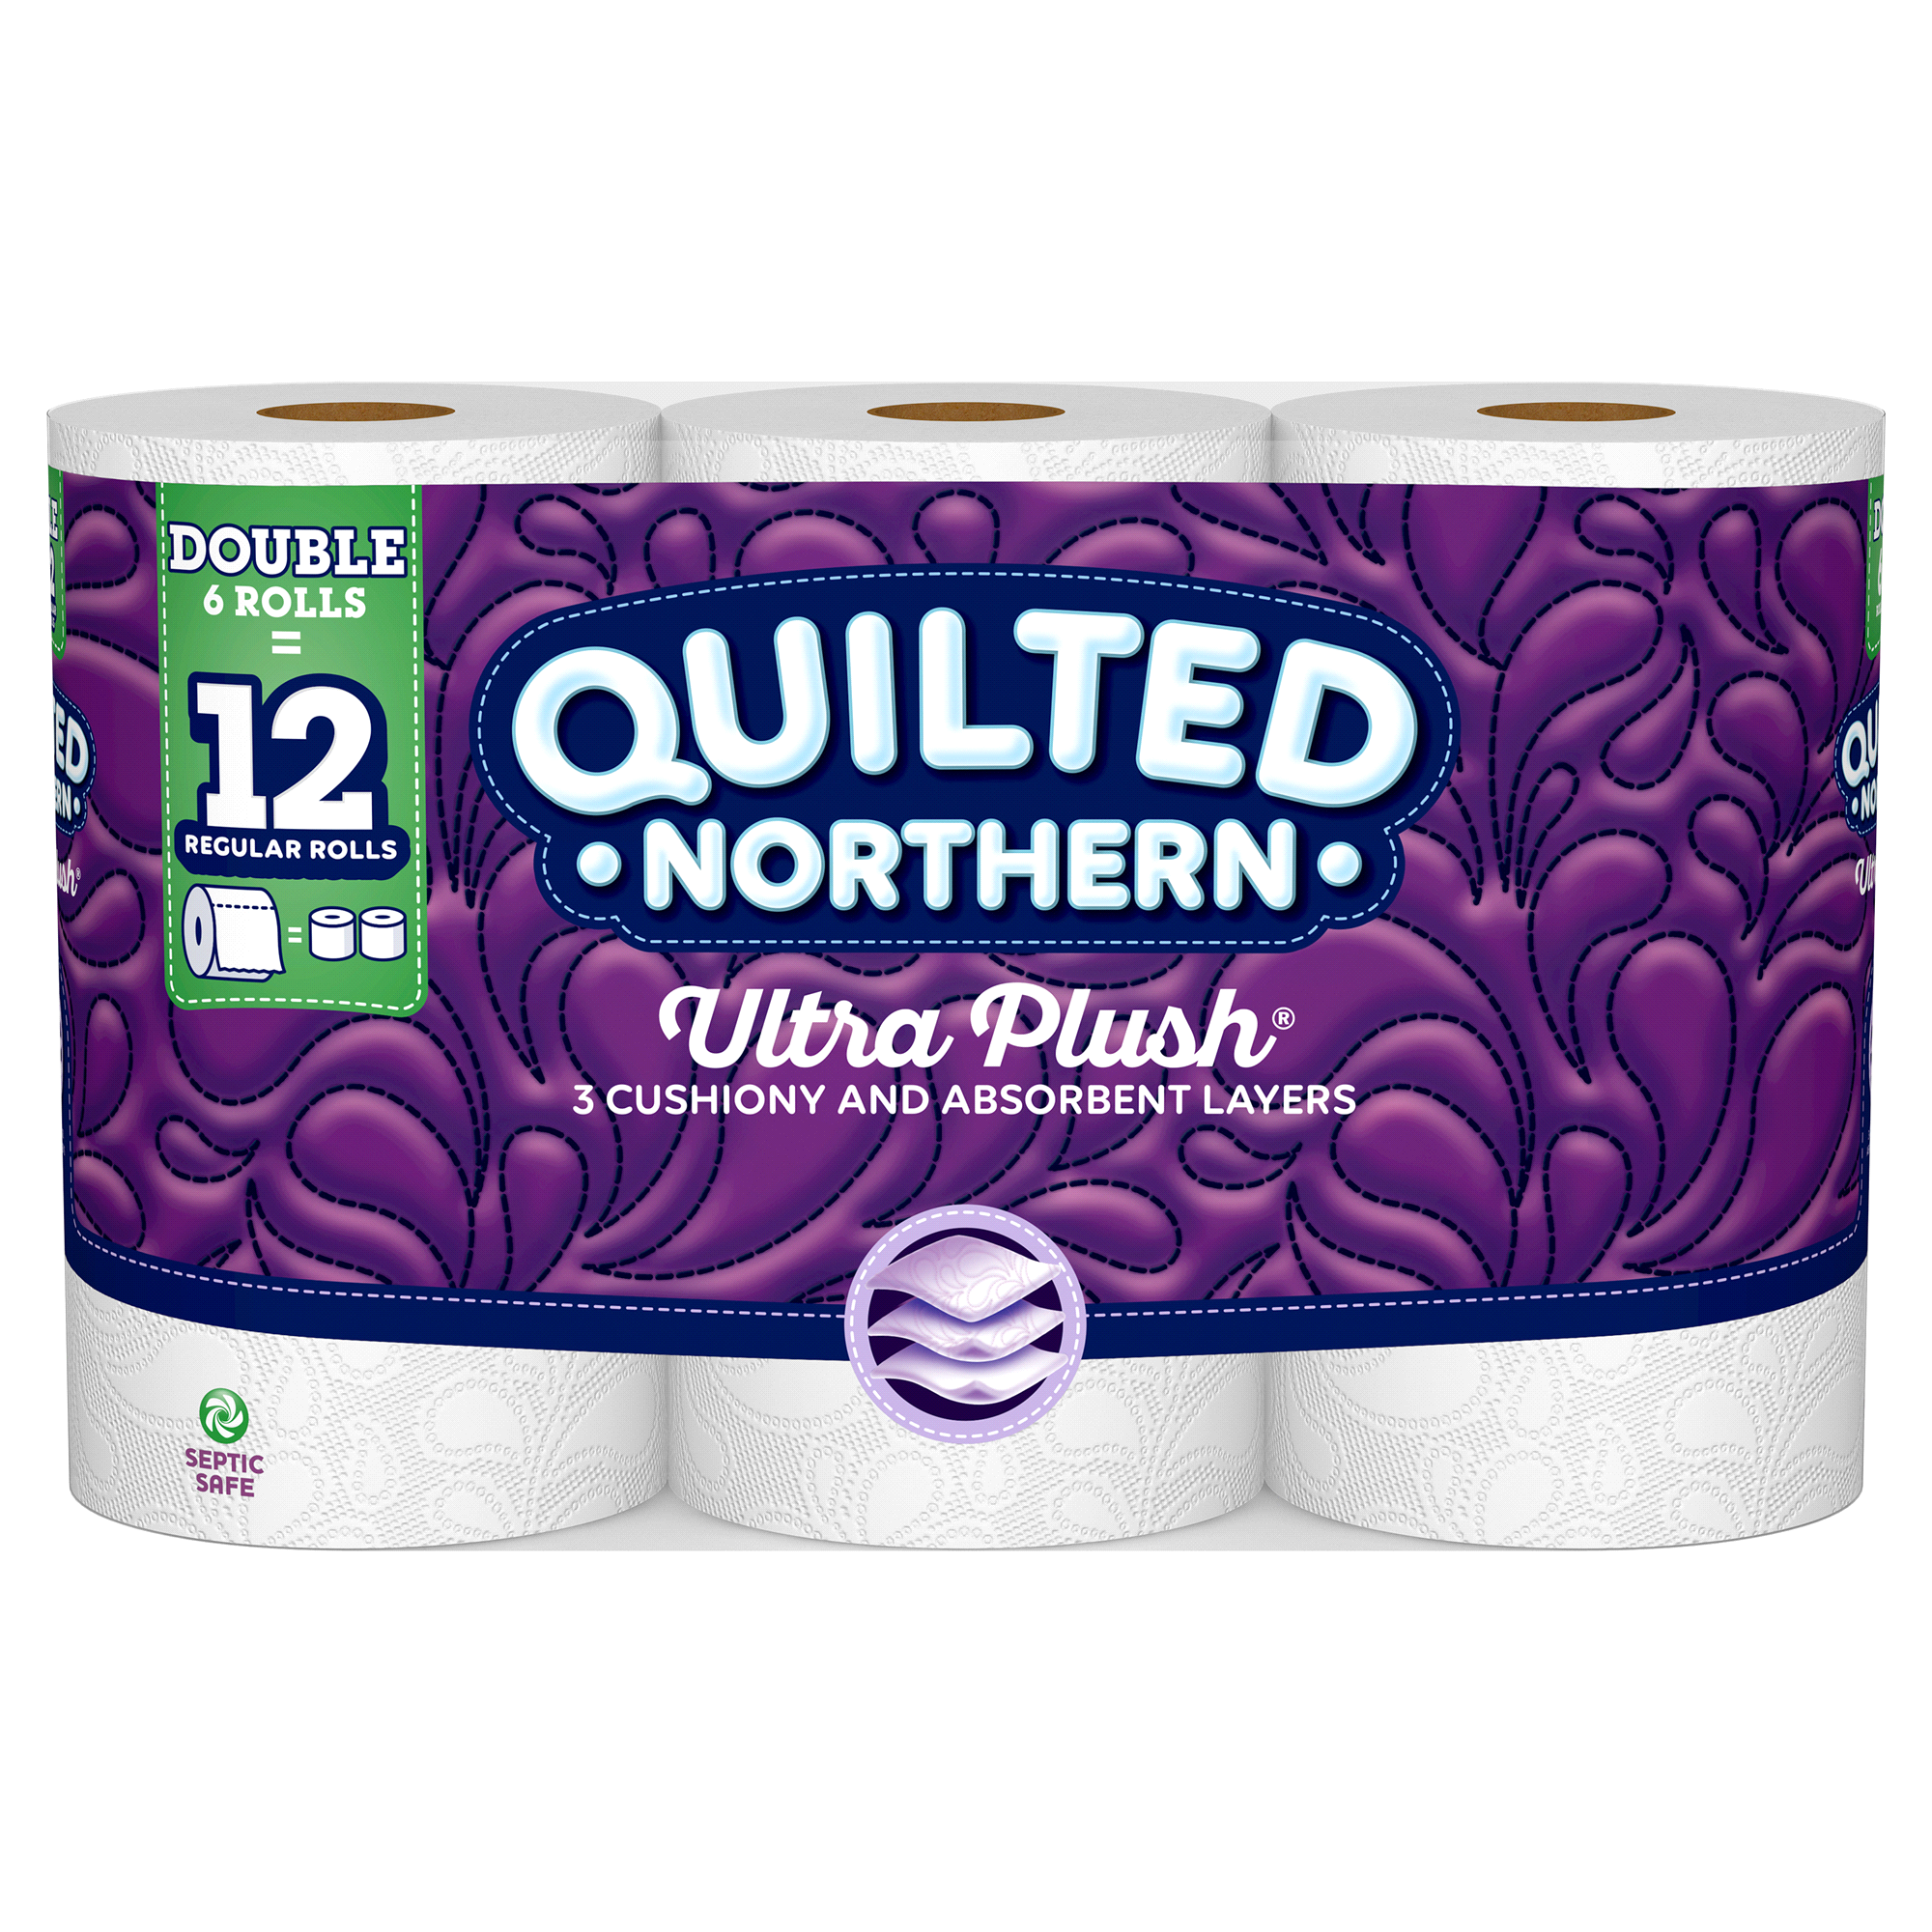 gro qltnrth delivery northern pdp jsp quilted order tissue quilt paper toilet ply bathroom fast plush ultra j